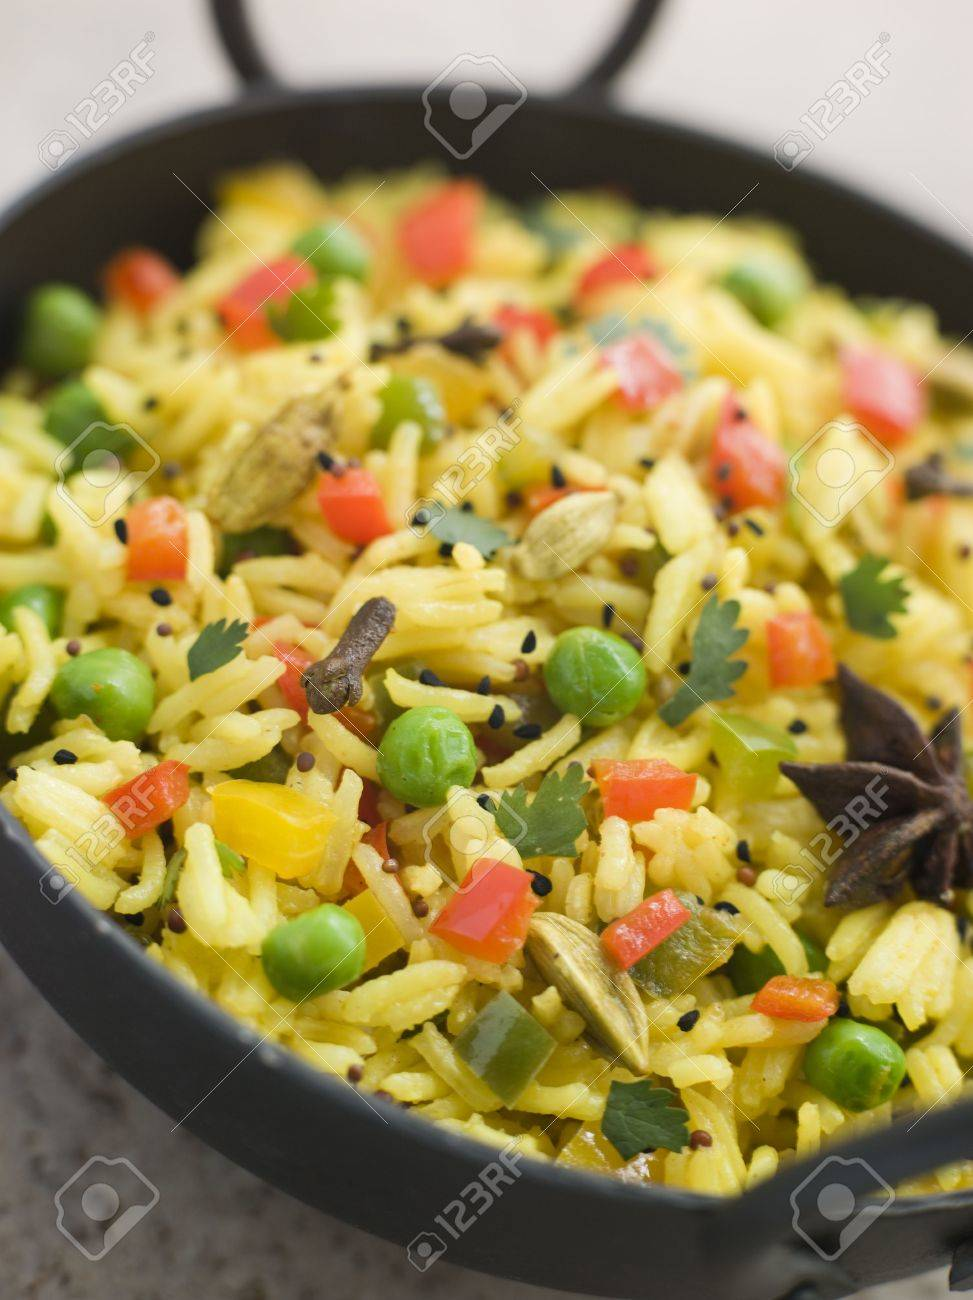 Vegetable Pilau Rice in a Balti Dish Stock Photo - 3131740